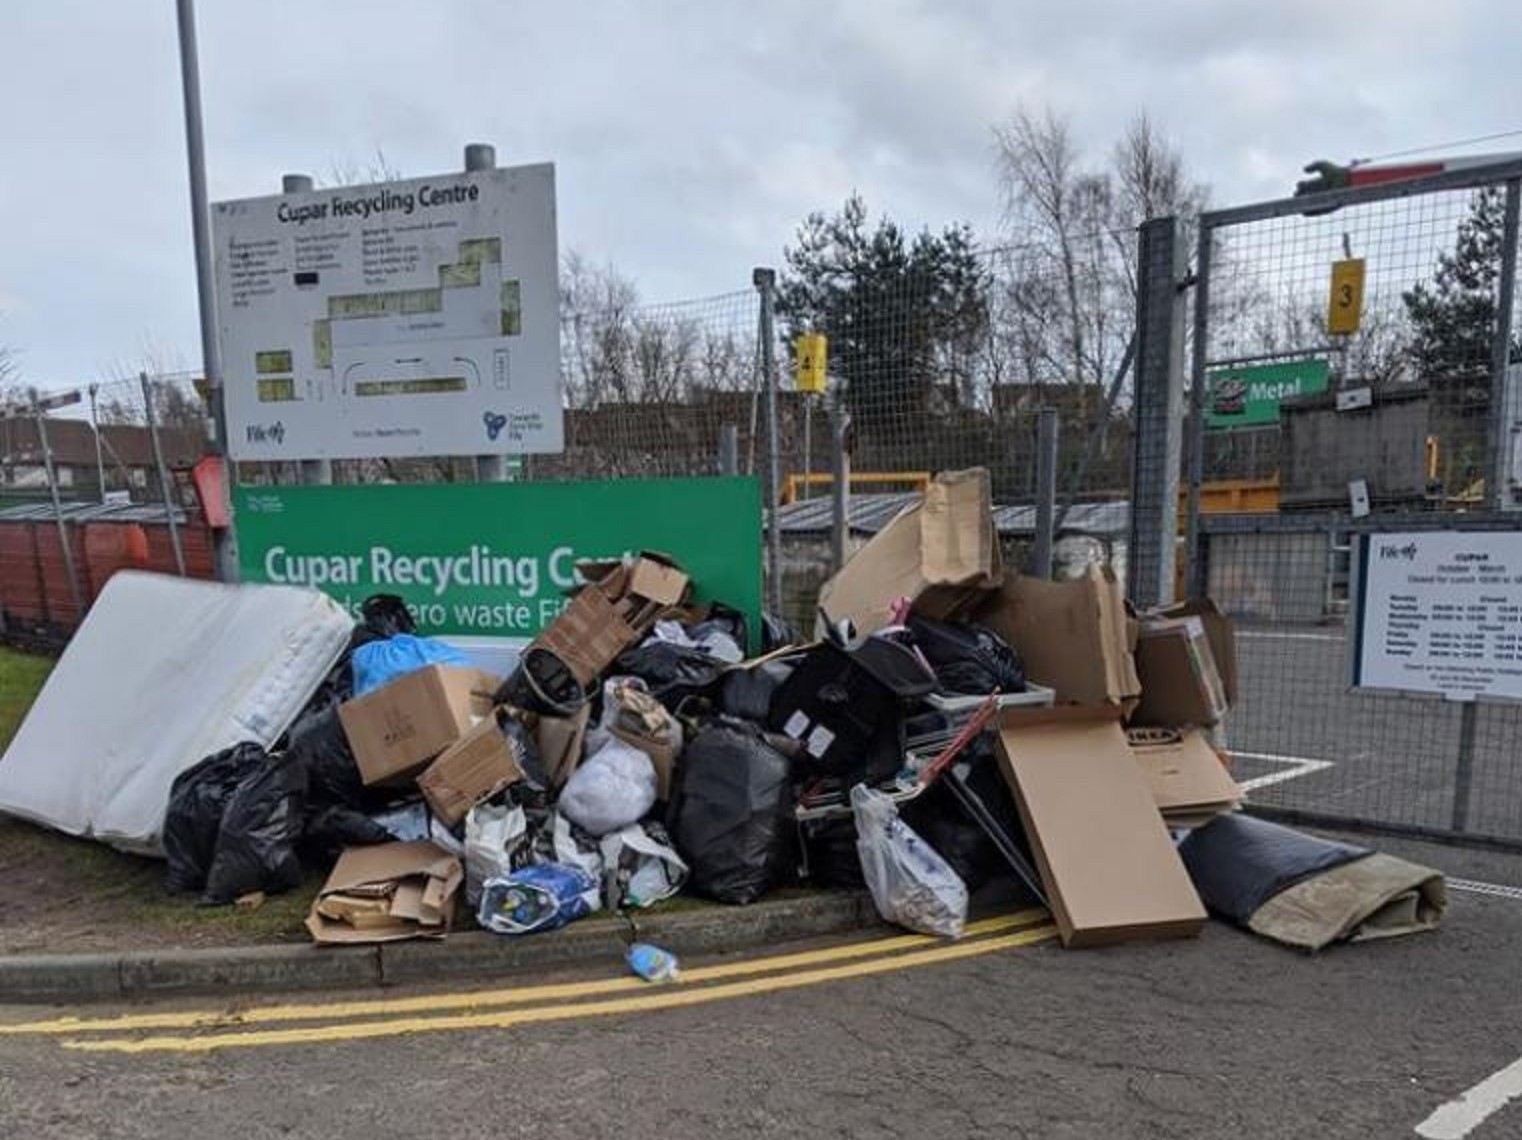 Rubbish piled at the entrance to Cupar recycling centre.